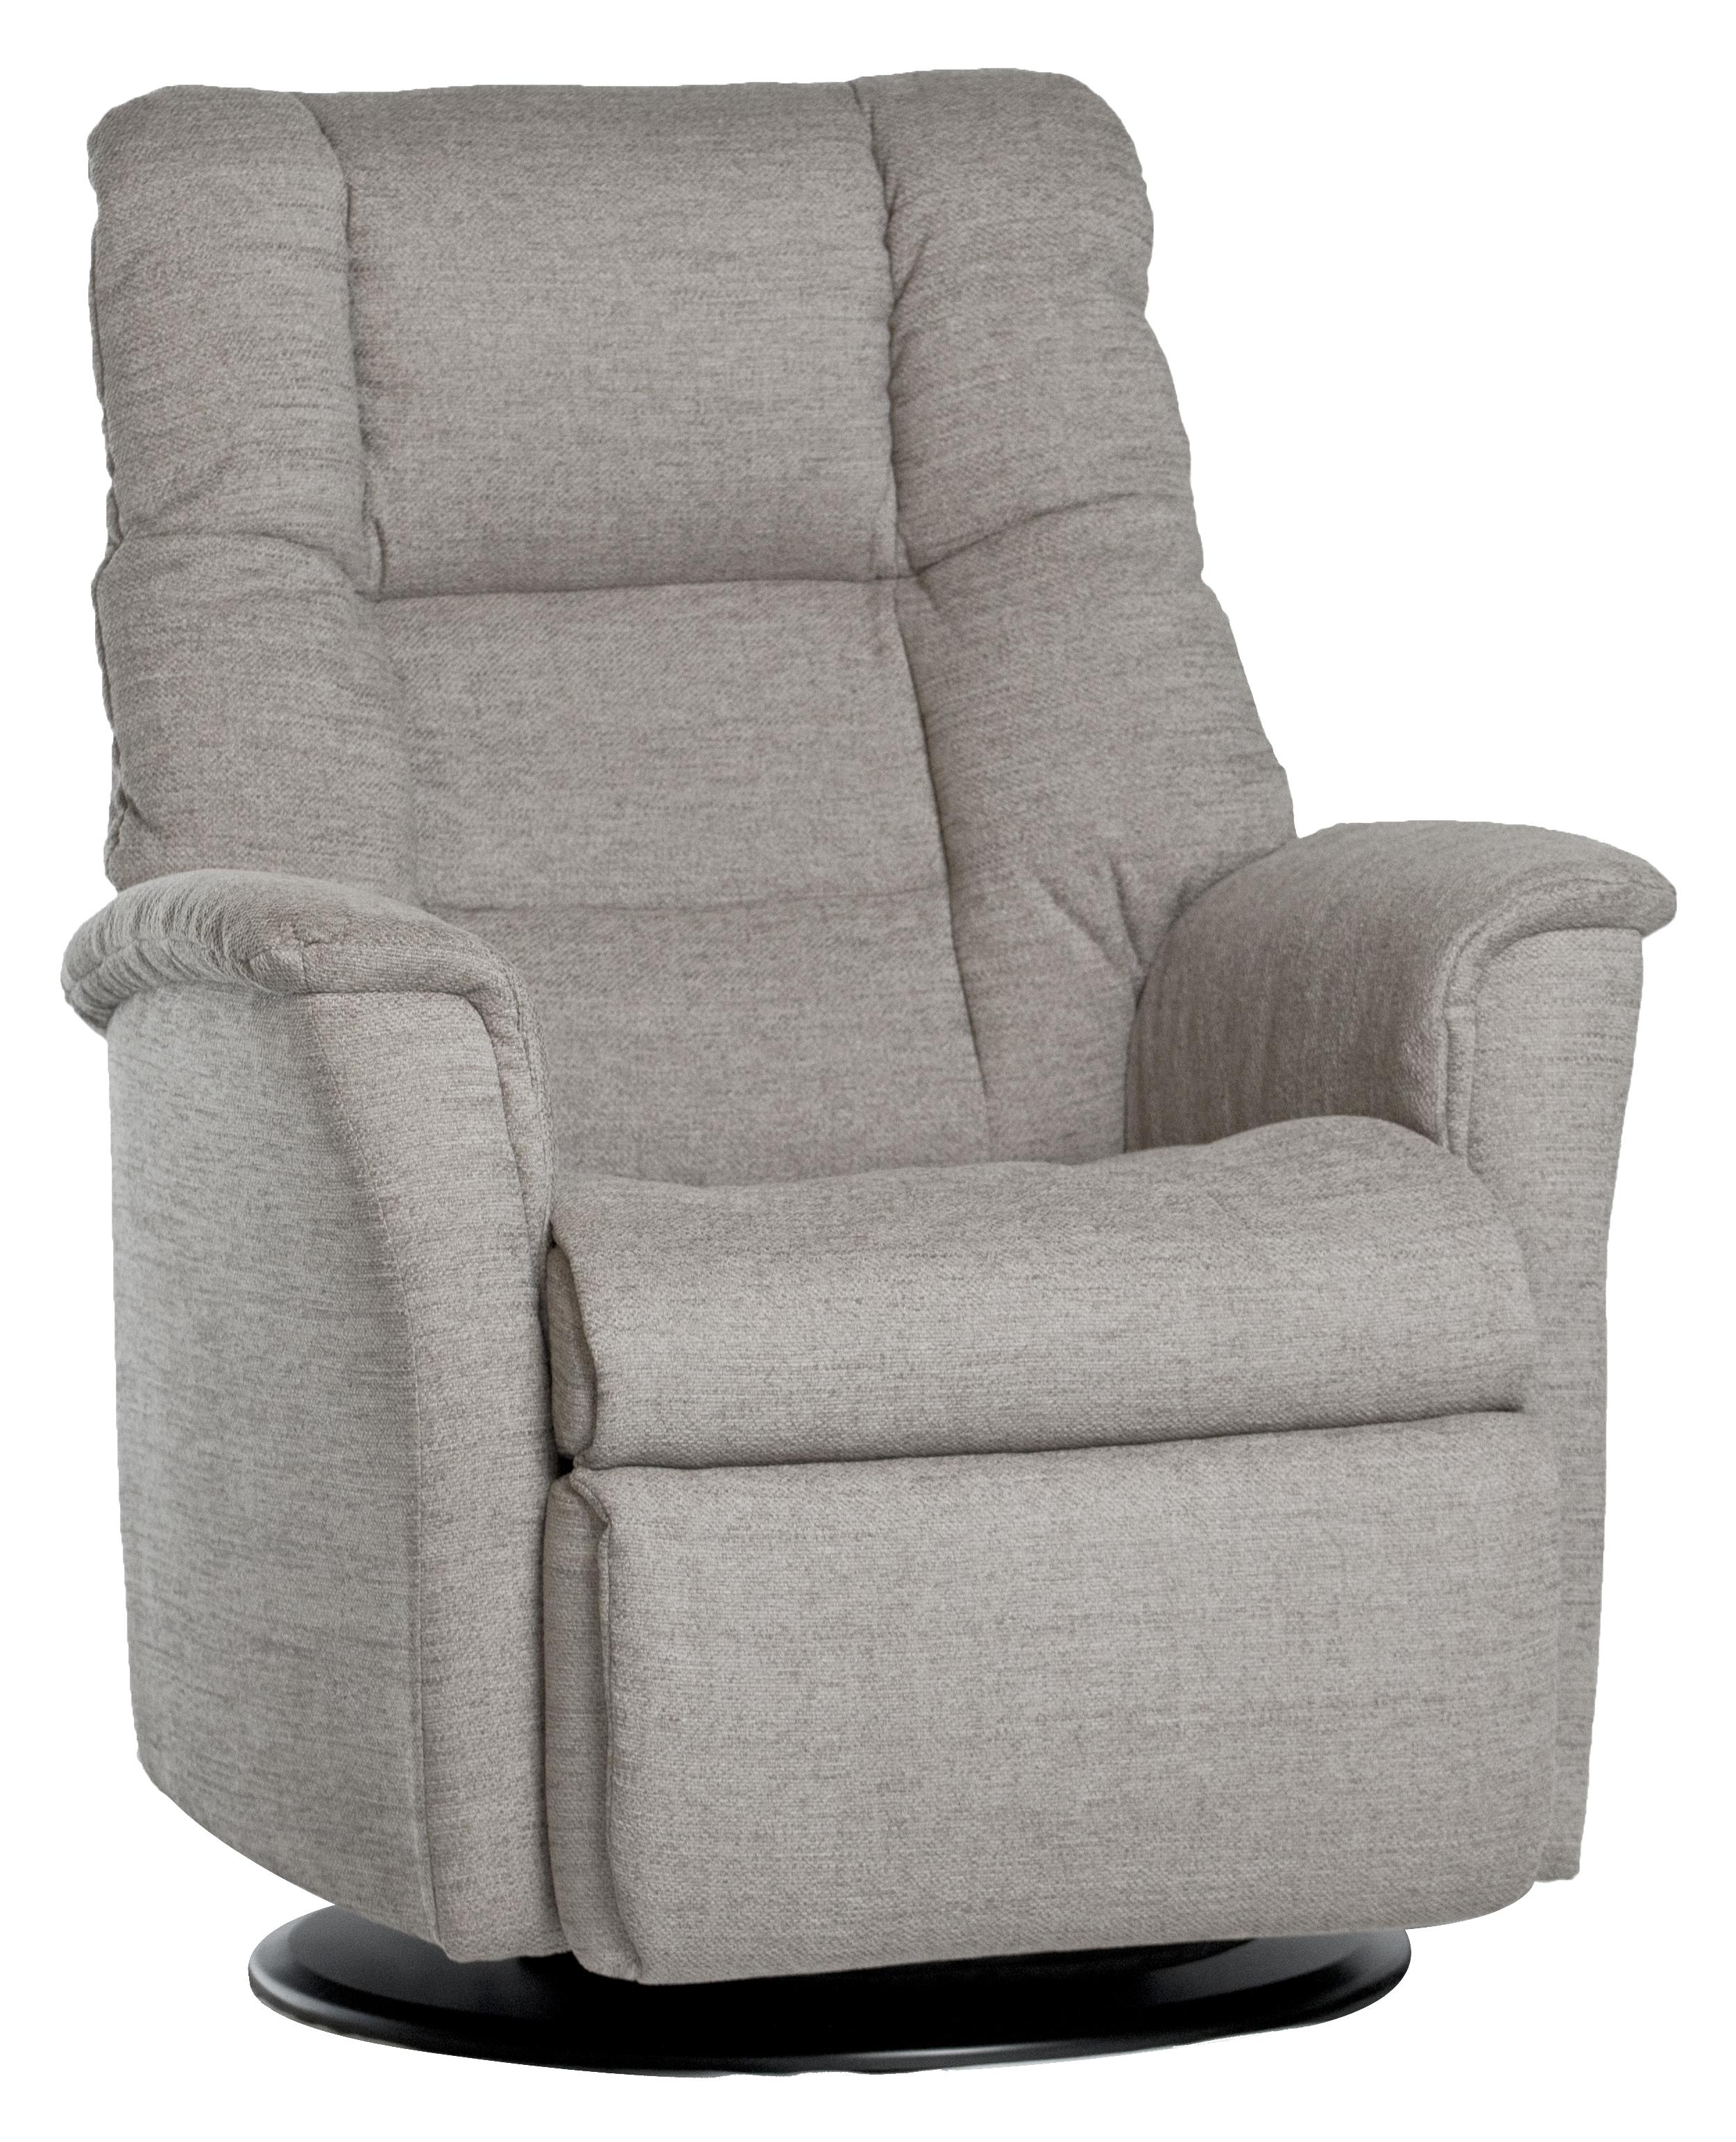 Fauteuils Relaxants Stressless Img Norway Stoney Creek Furniture Toronto Hamilton Vaughan